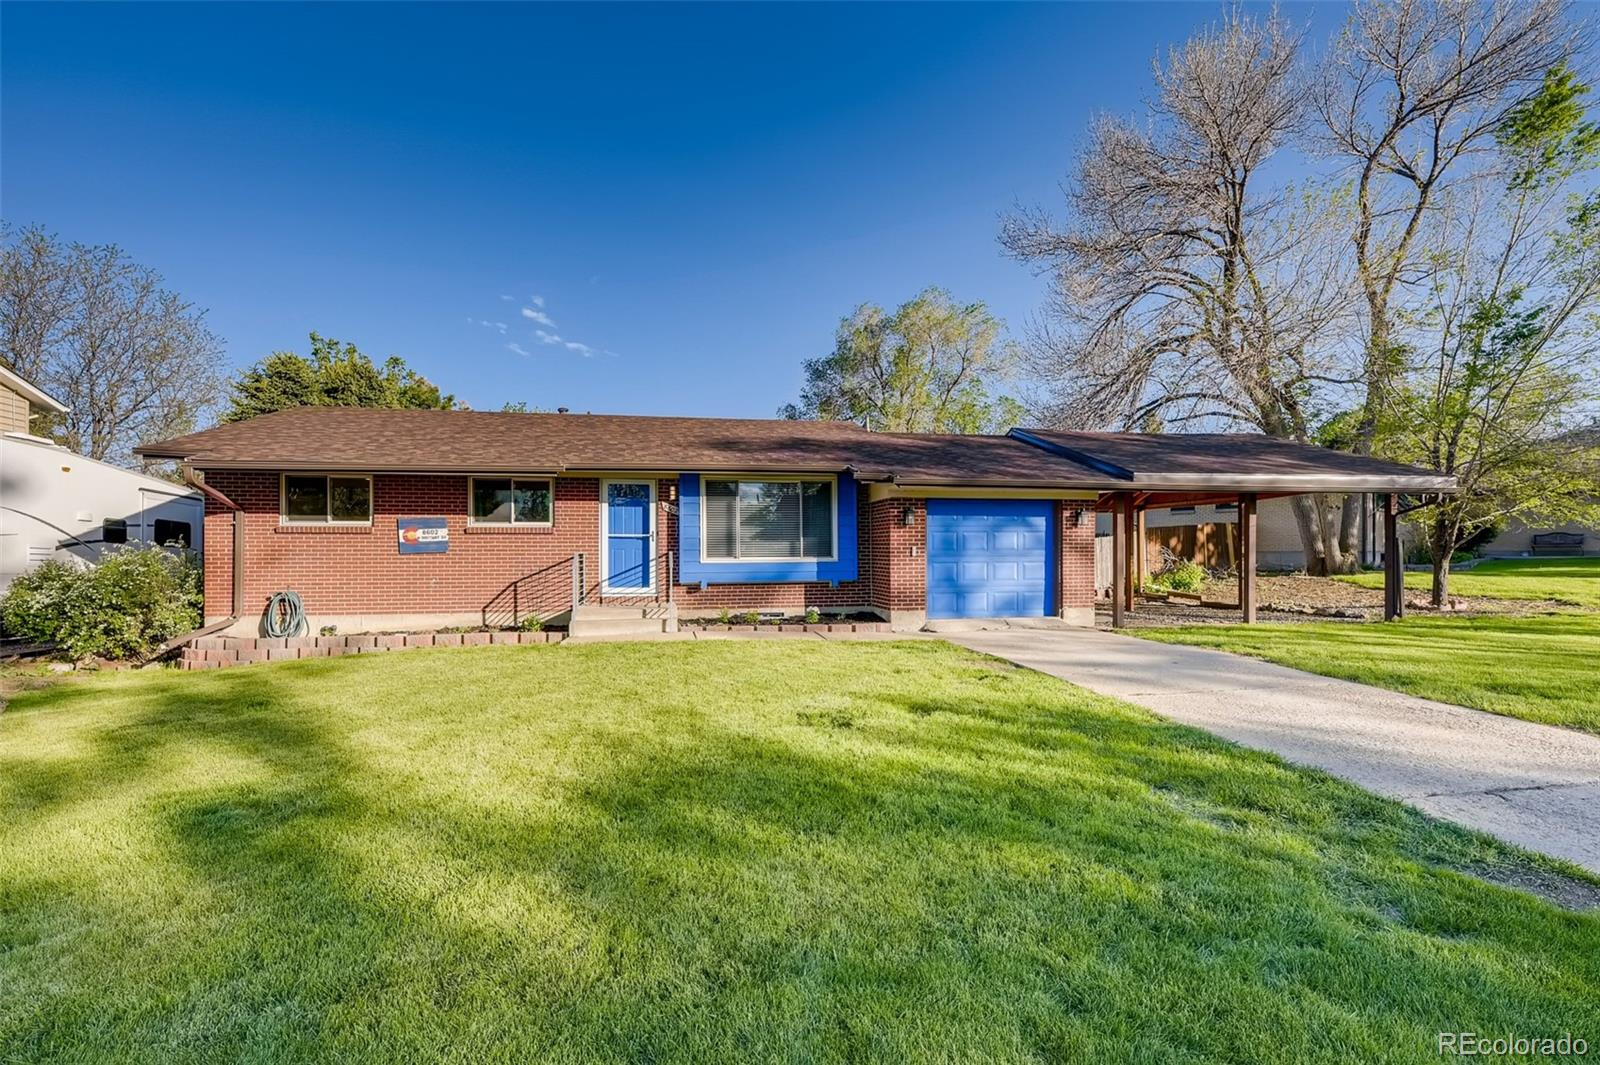 Amazing location close to everything but tucked into a quiet neighborhood. Close proximity to Clement Park, Columbine Library, Lilley Gulch Rec Center and great trail system. Southwest Plaza Mall and 3 fitness centers within 2 mile radius.  Spacious ranch flooplan features a gas fireplace and hardwood floors. Large finished basement with additional bedroom and bathroom plus plenty of flex space (home office, 2nd living room, craft area and/or home gym) Spacious backyard and 2 stall carport plus an additional garage. New roof 2016, new hot water heater, new wall/attic insulation, and new main sewer line. Radon Mitigation system already installed!  Move in and make it your new home with only a few personalized touches!